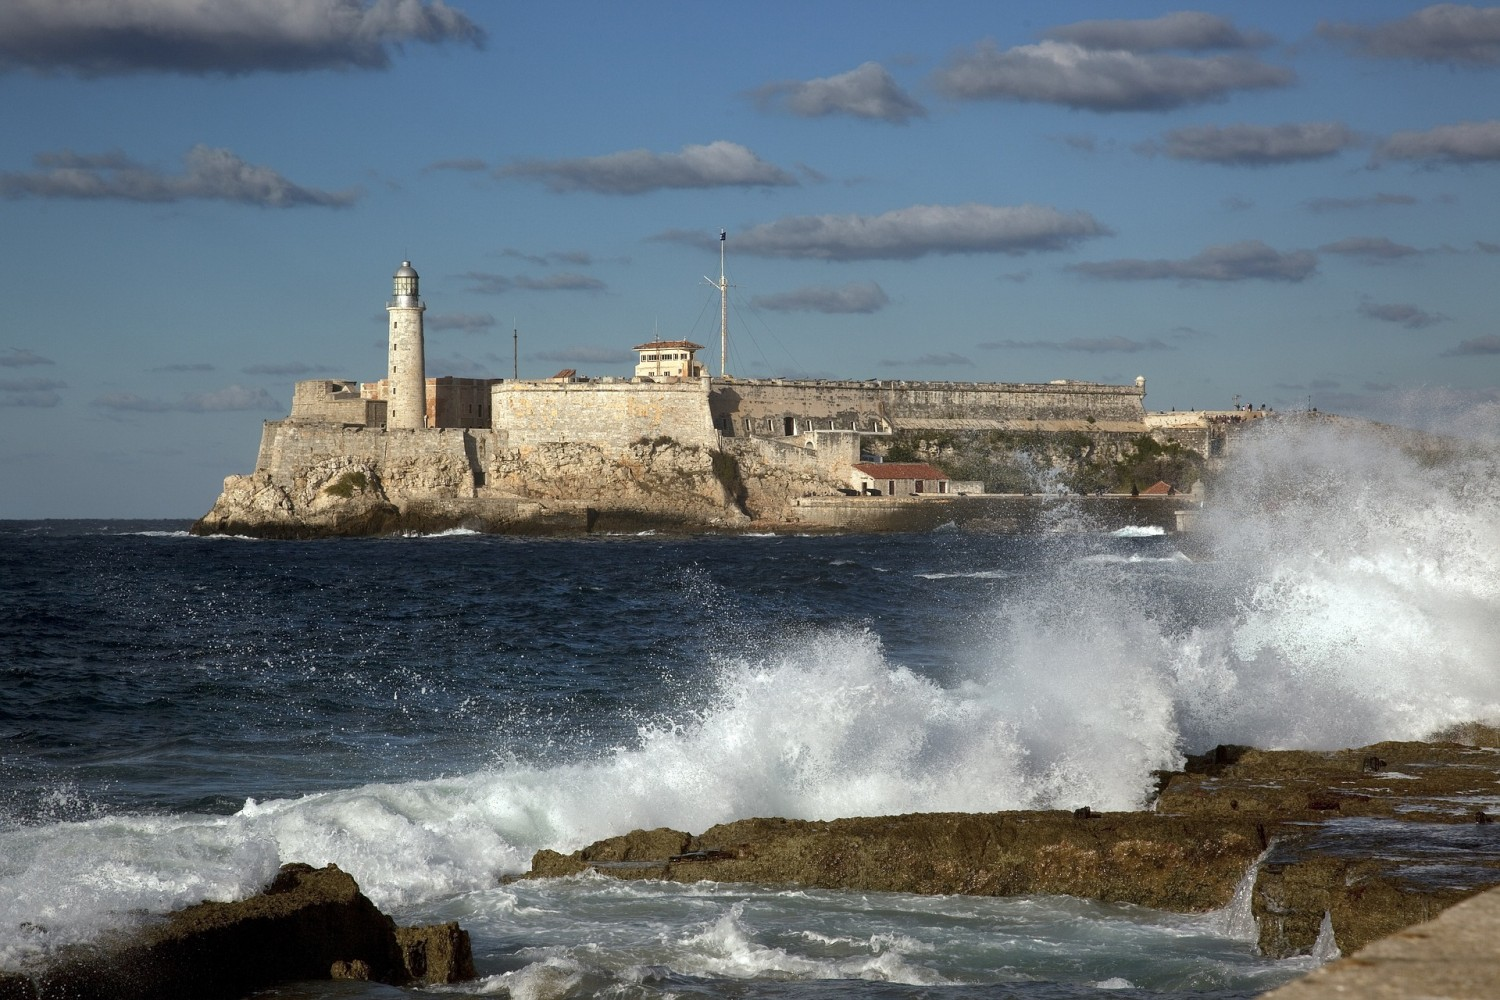 morro castle, Havana. A gorgeous hotspot in the city